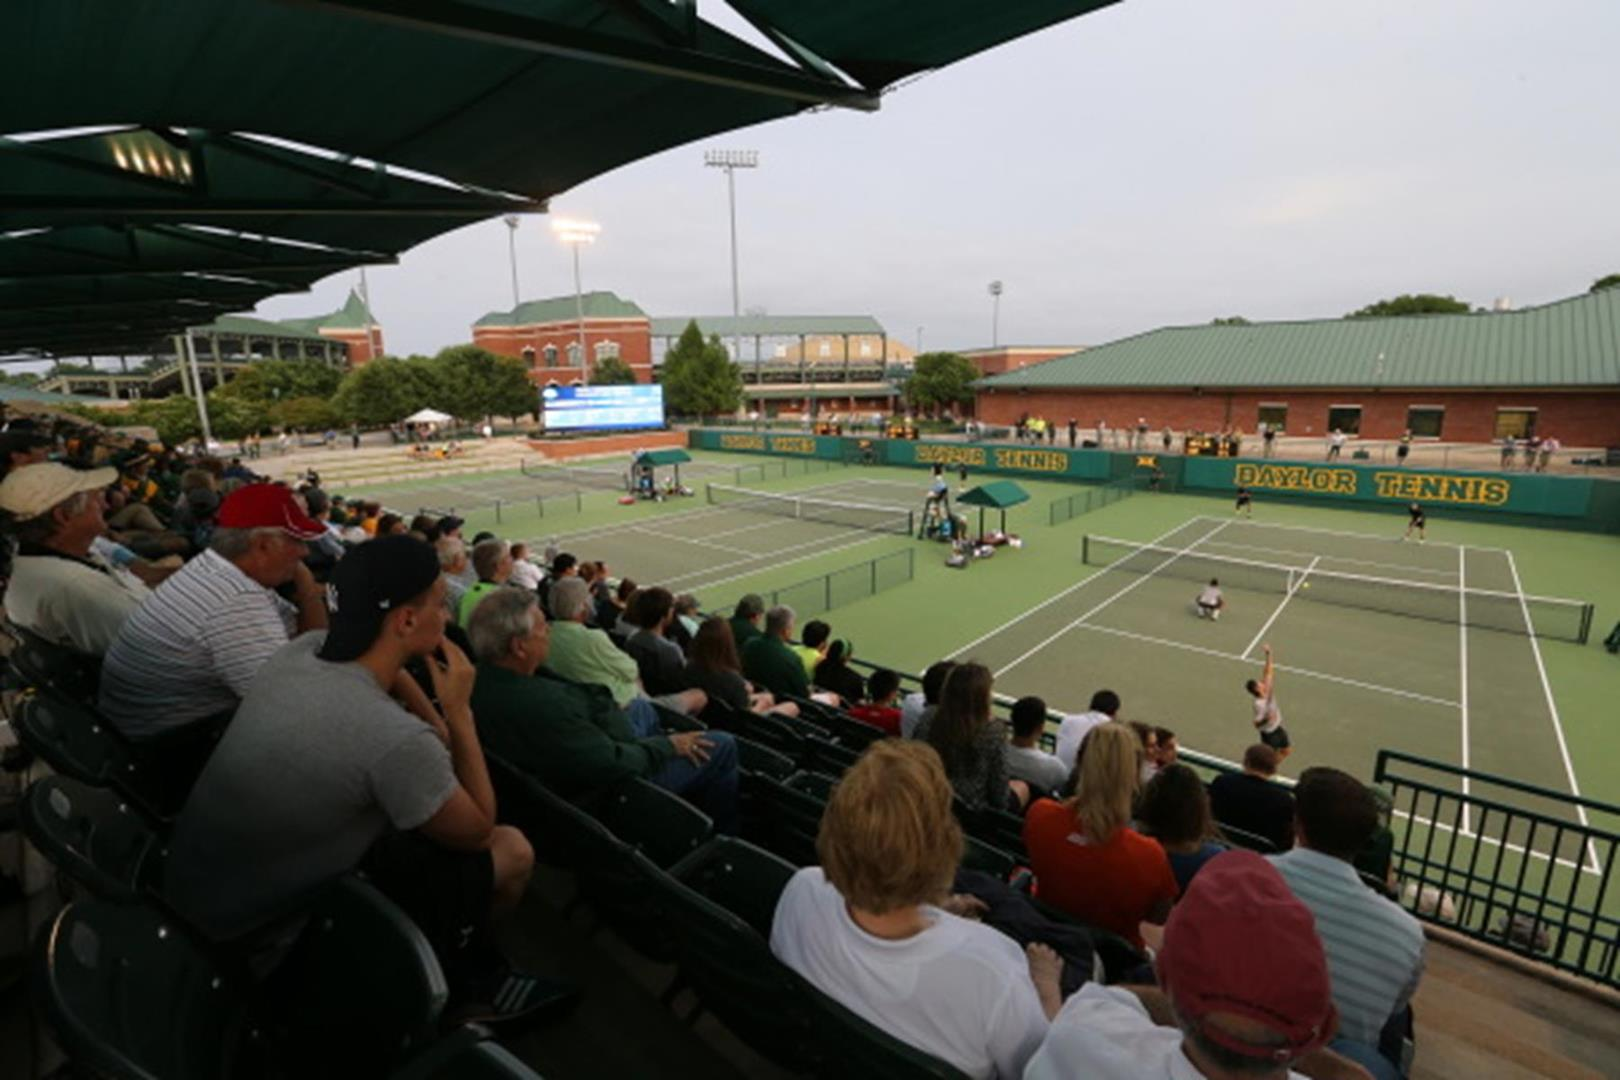 11 Top-Tier American Tennis Facilities